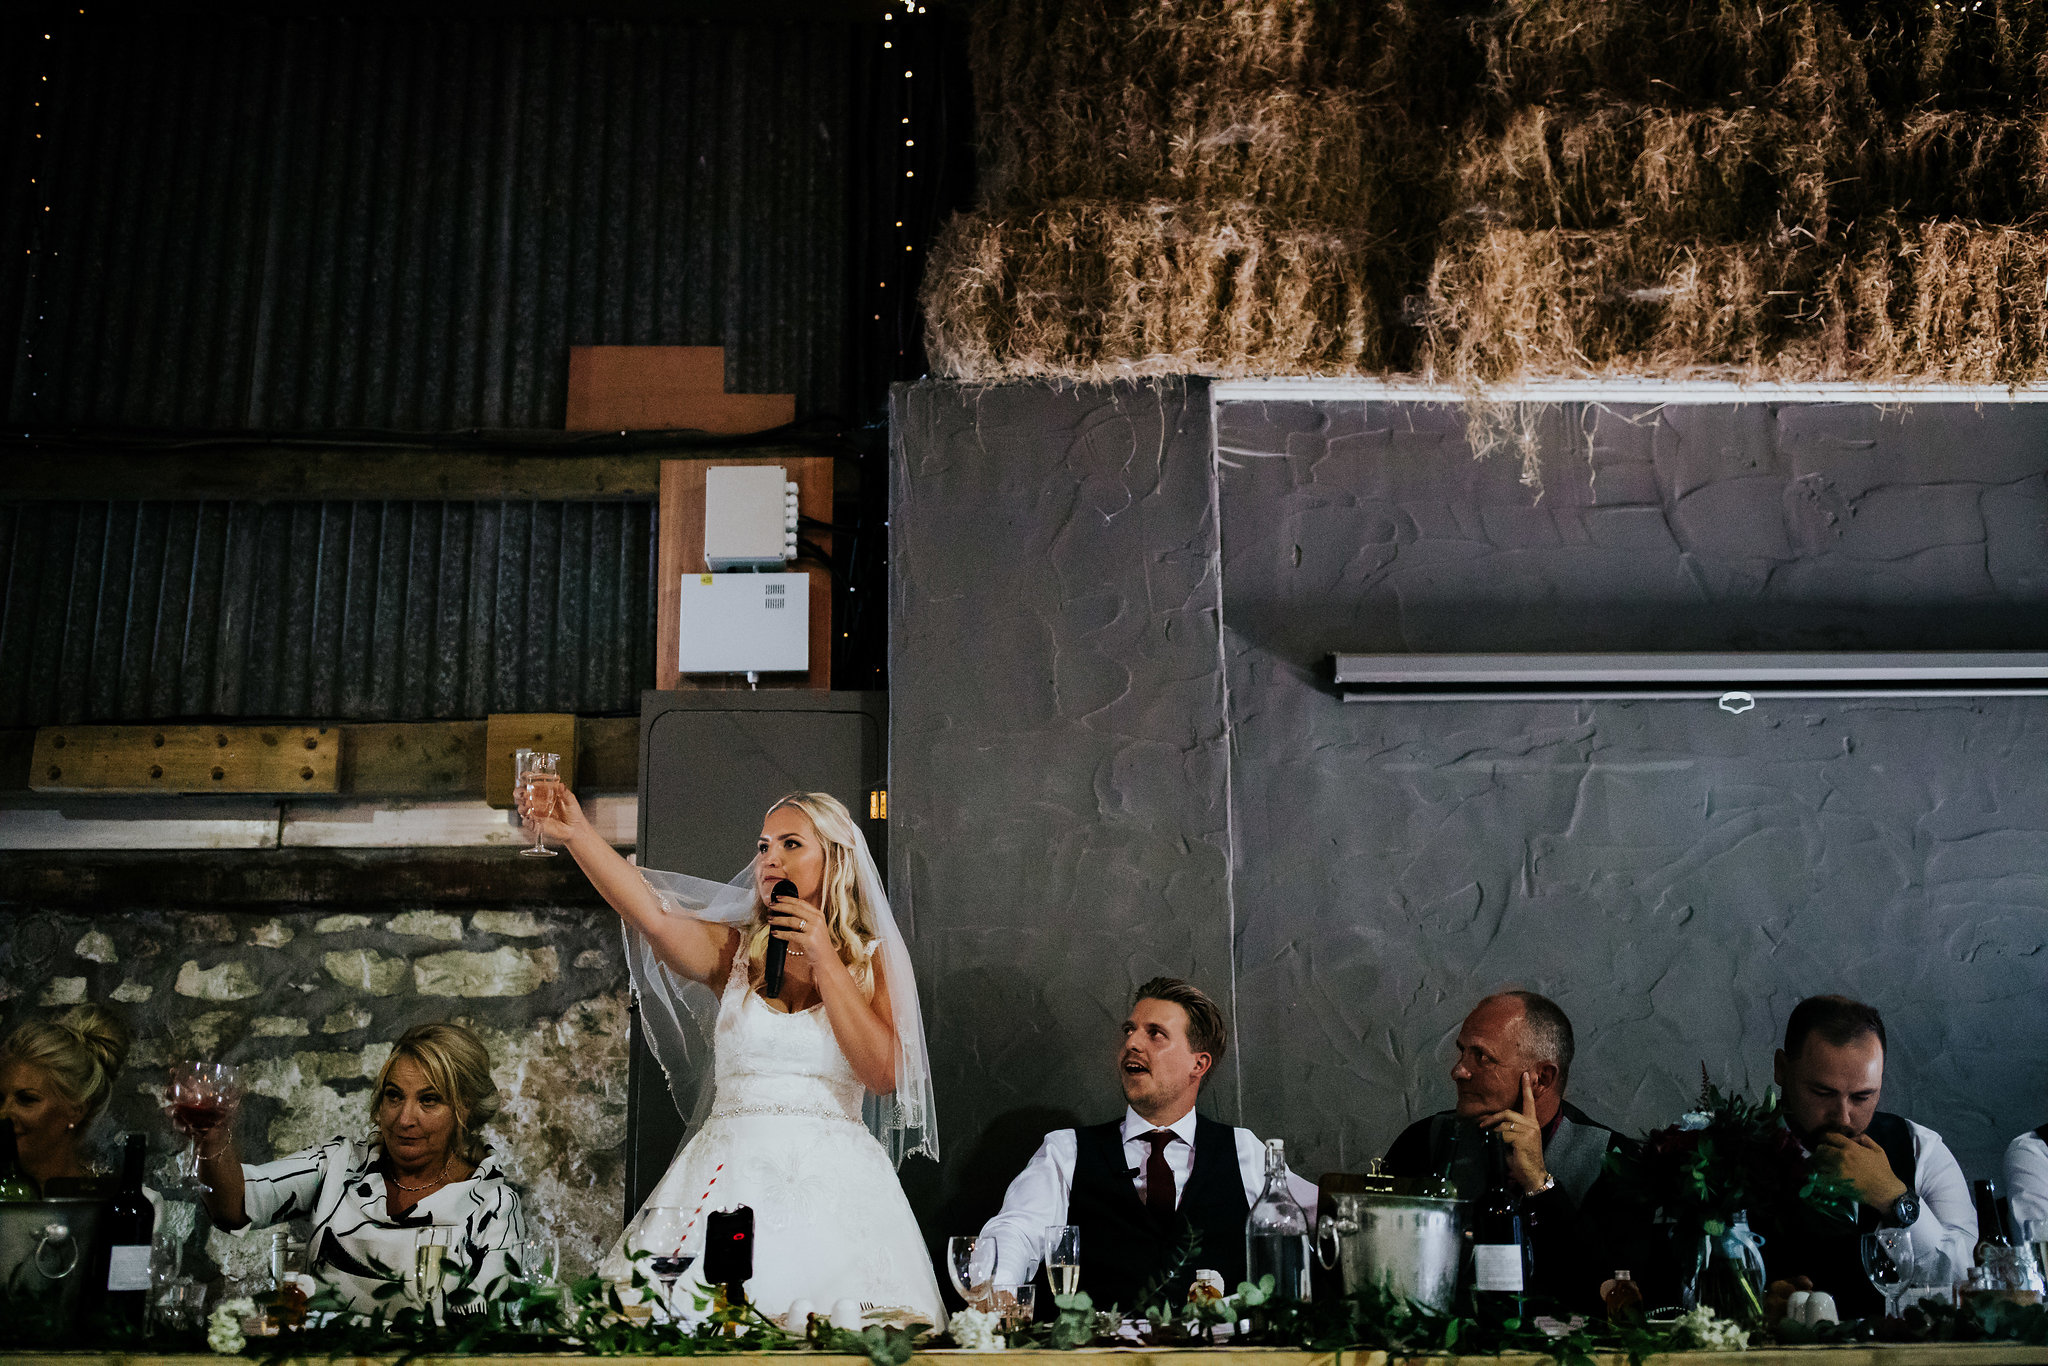 harelaw farm wedding photographs (90).jpg